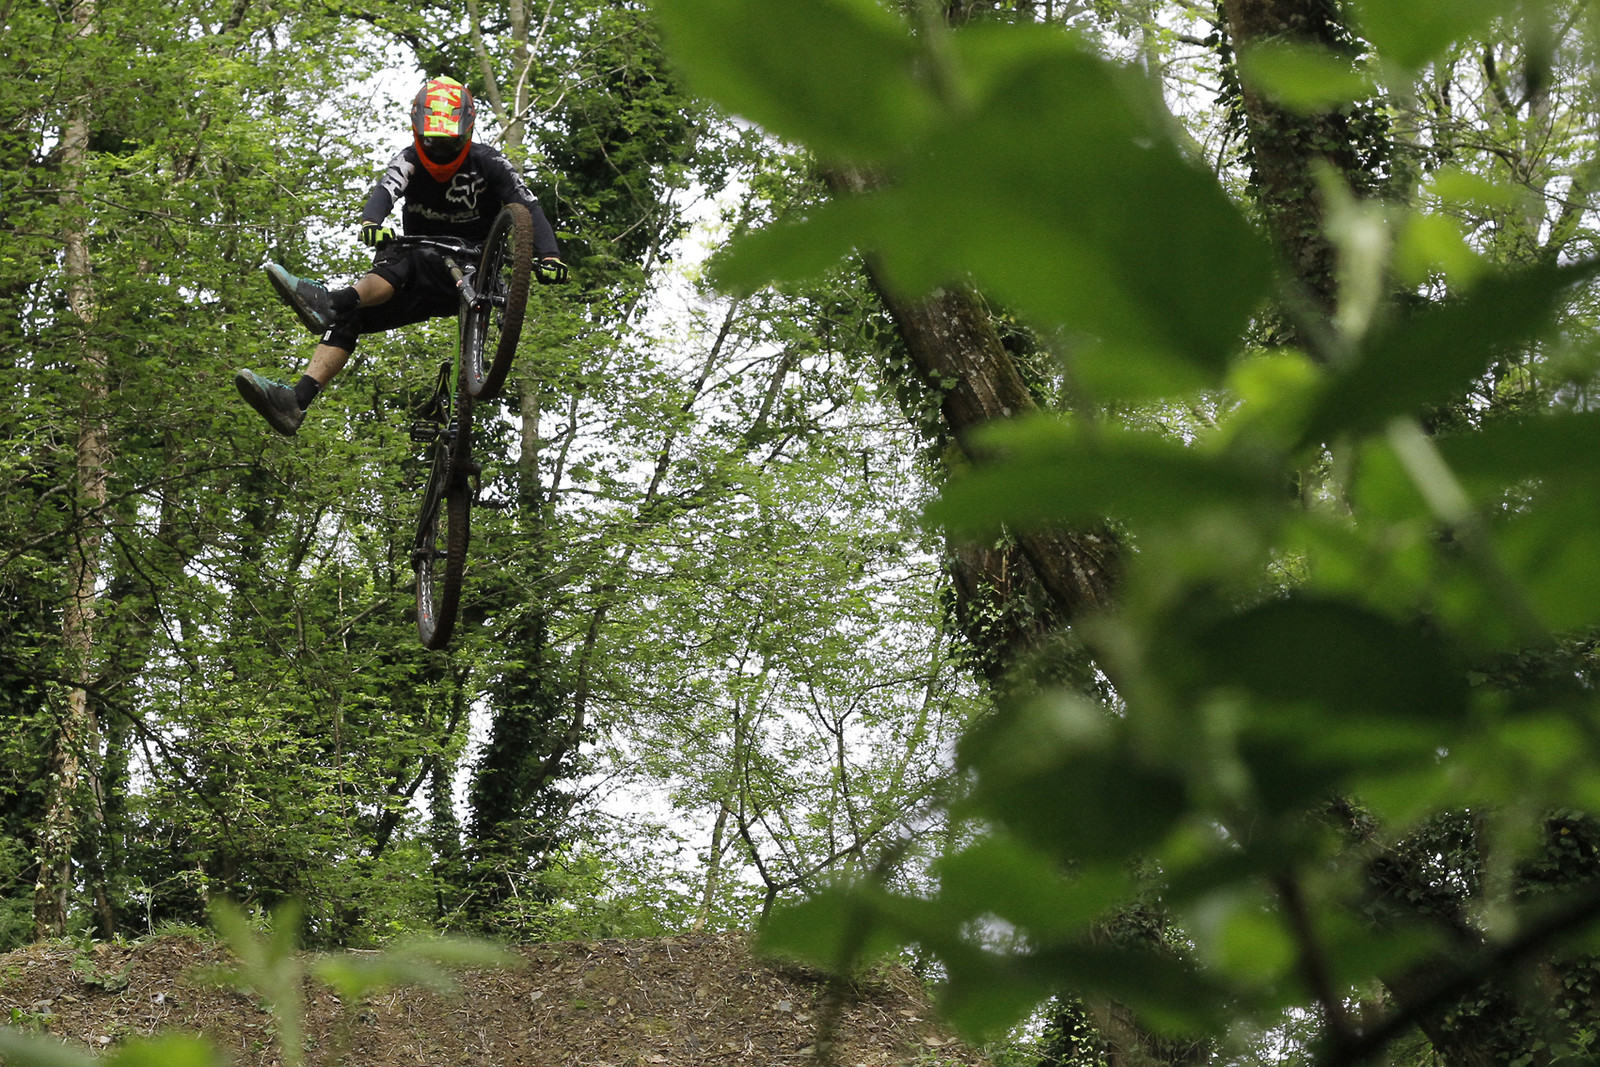 Kye Forte going old schol - CaldwellVisuals - Mountain Biking Pictures - Vital MTB